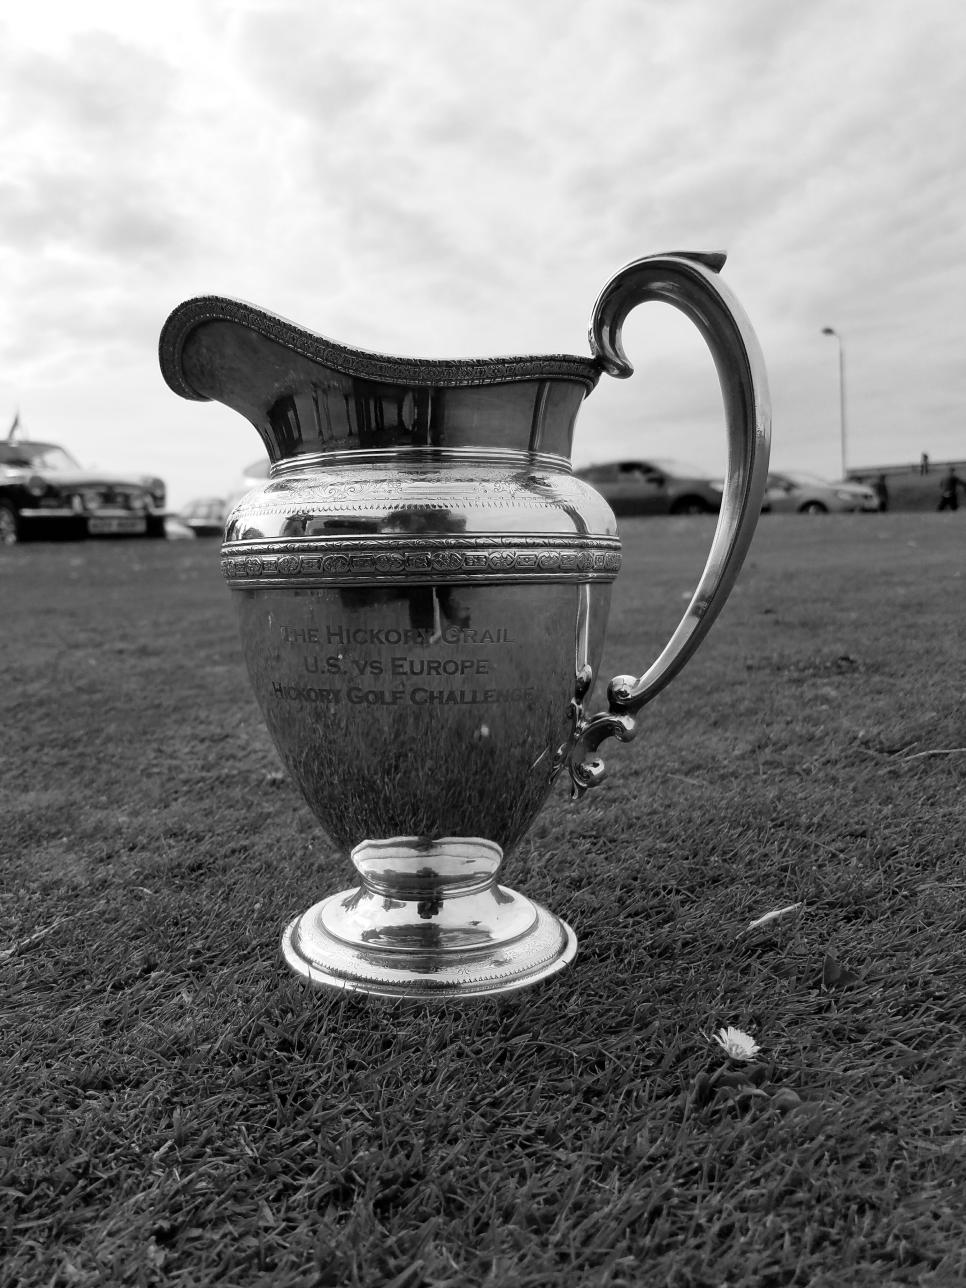 hickory-tournament-grail-trophy-bw.jpg